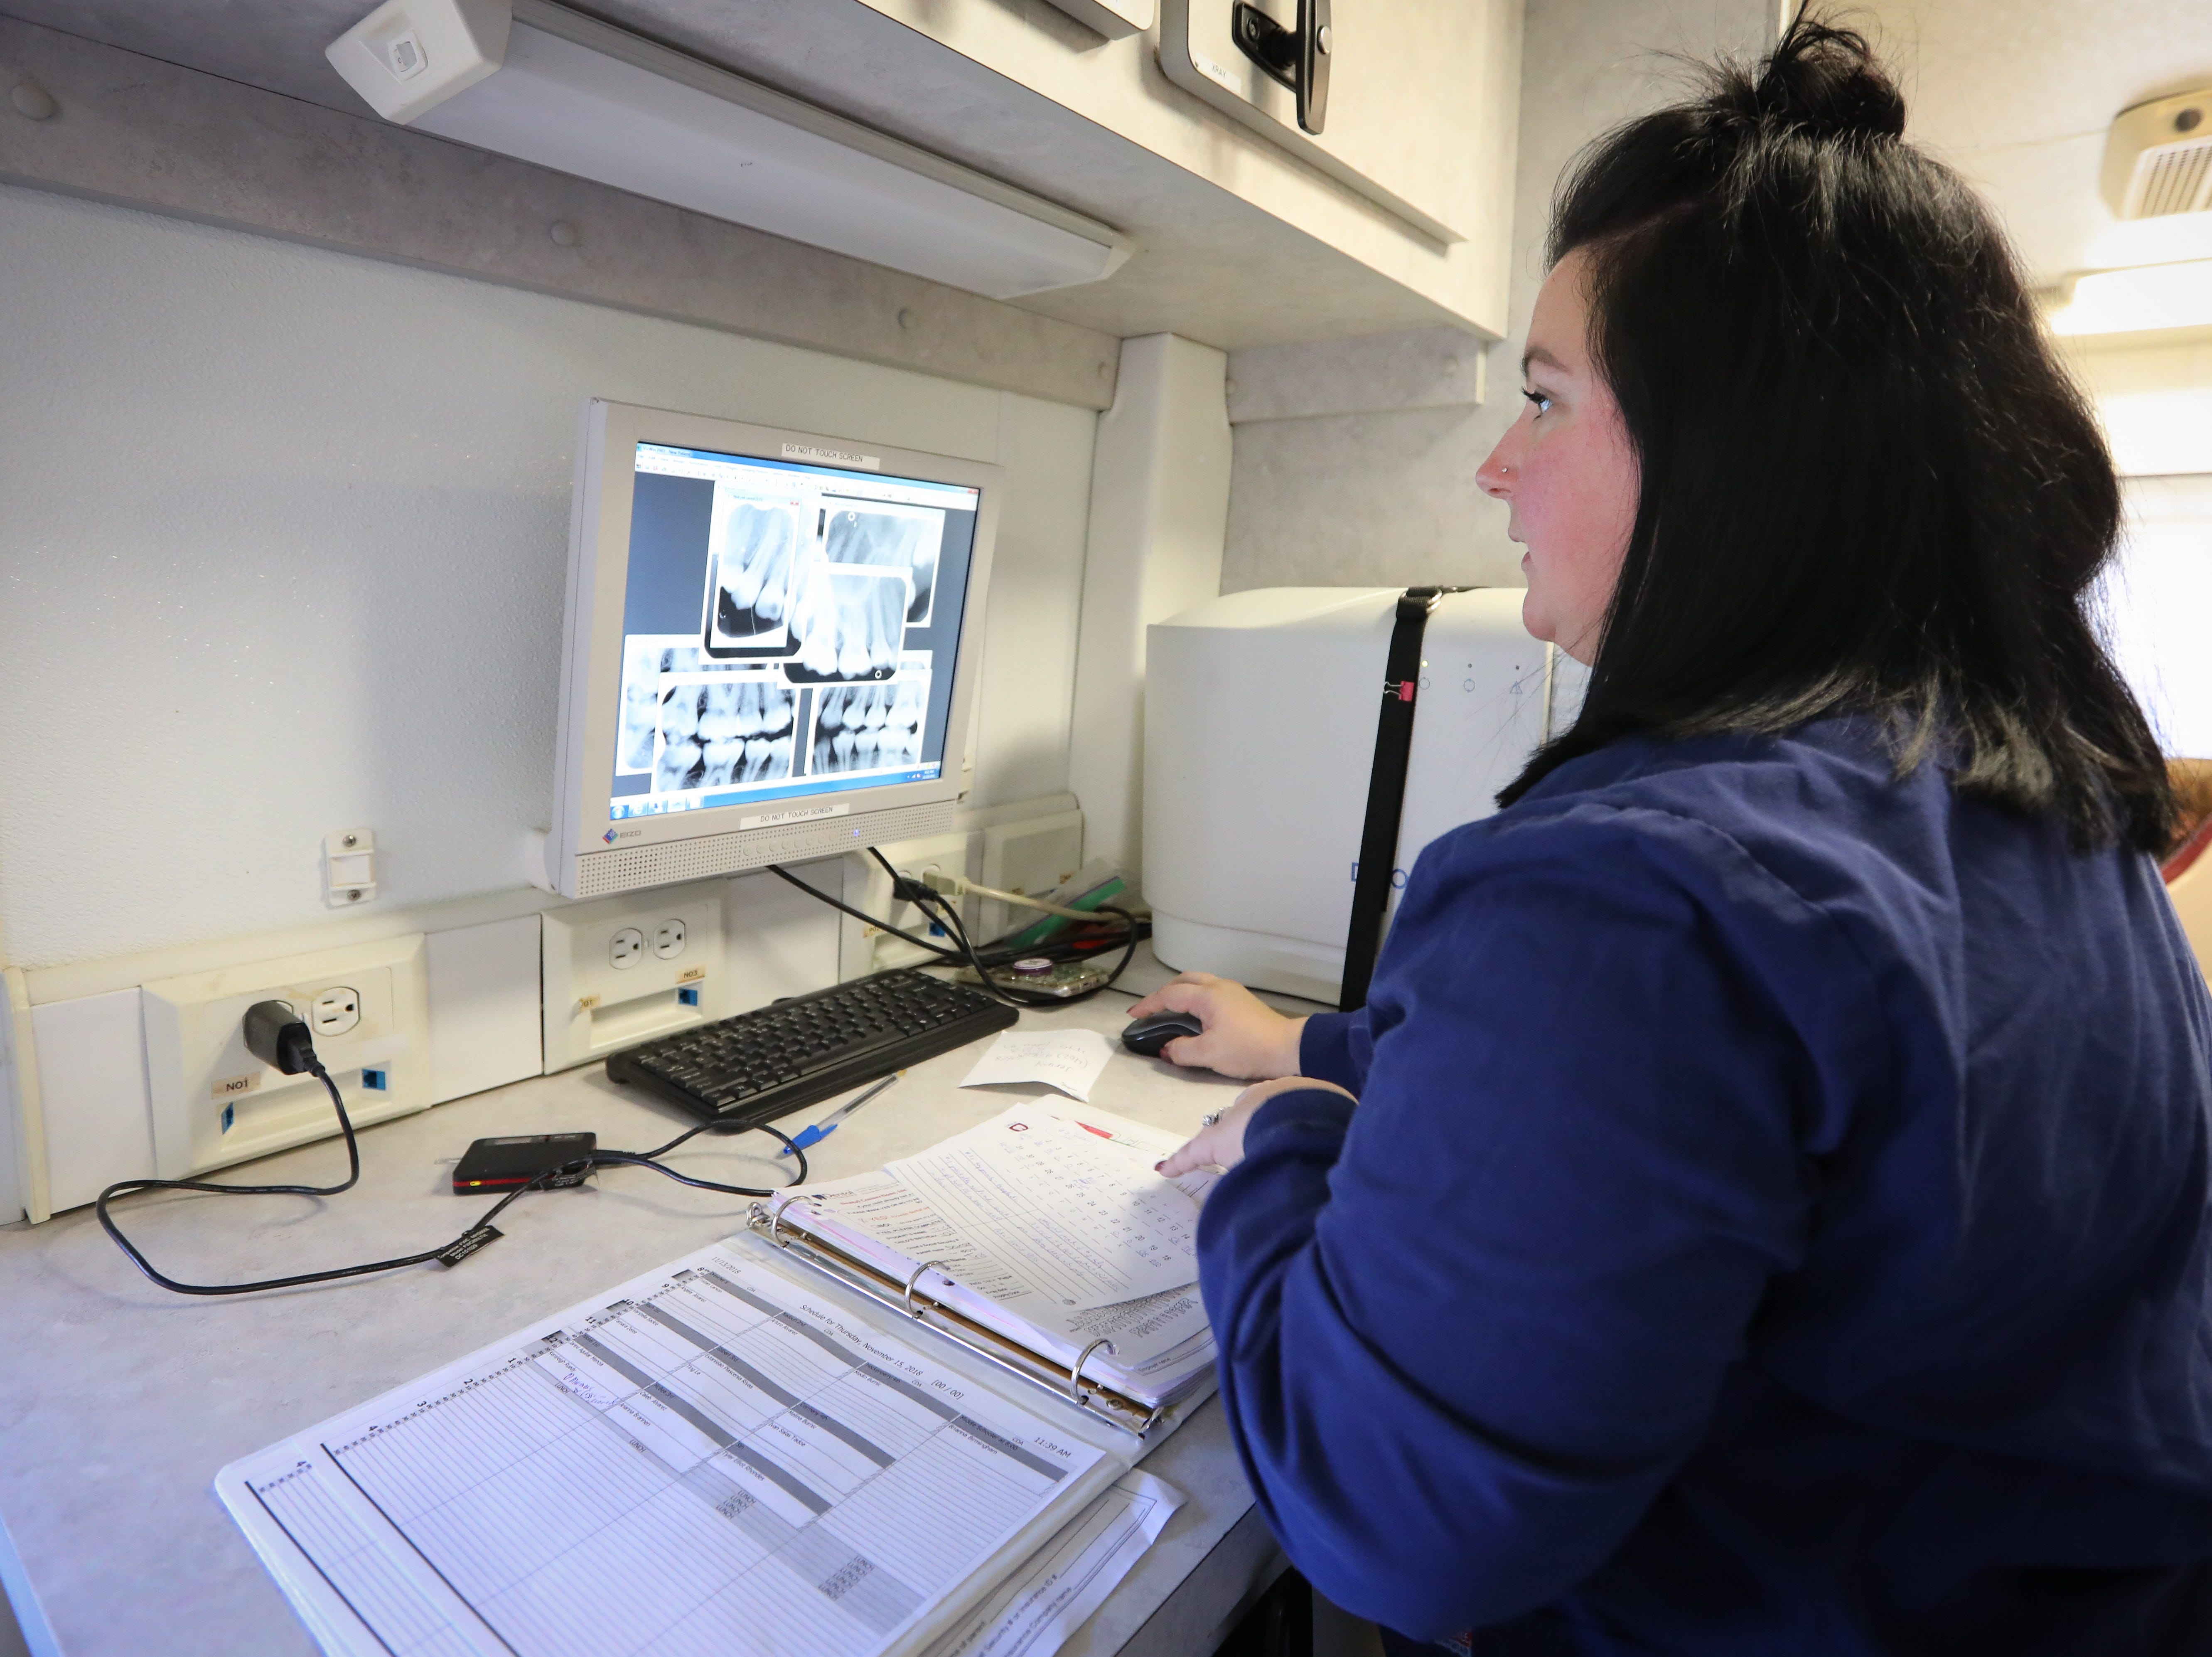 Hygienist Carissa Thompson, 37, of Des Moines, inspects the x-ray results inside the Dental Connections mobile unit in the Dental Connections mobile unit at Karen Acres Elementary School on Nov. 15, 2018 in Urbandale, Iowa. Dental Connections is a mobile unit that provides basic dental check-ups for students.